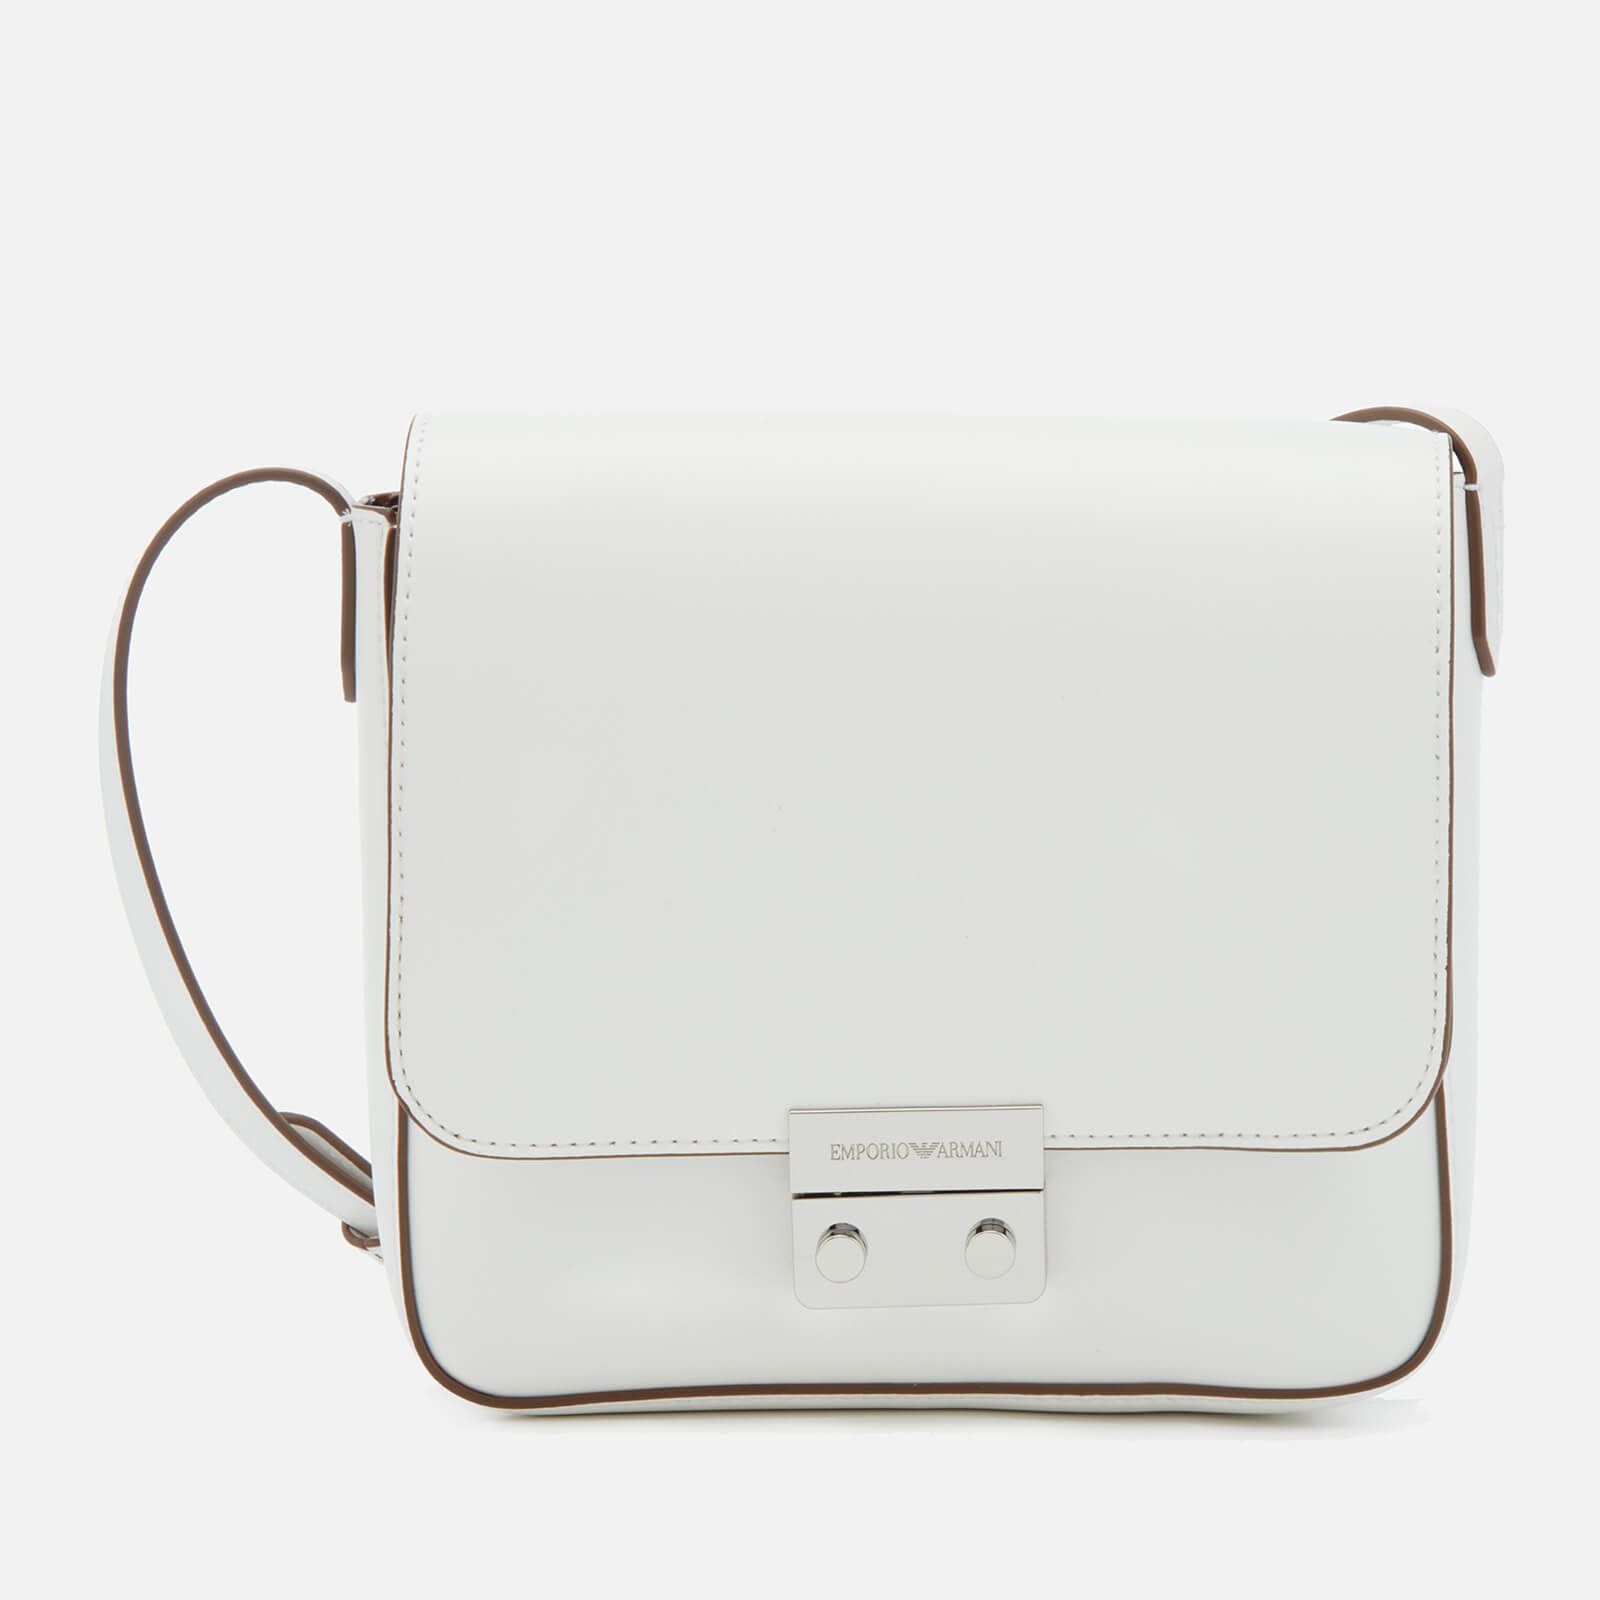 d68ac06ebba4 Emporio Armani Women s Sling Bag - White - Free UK Delivery over £50